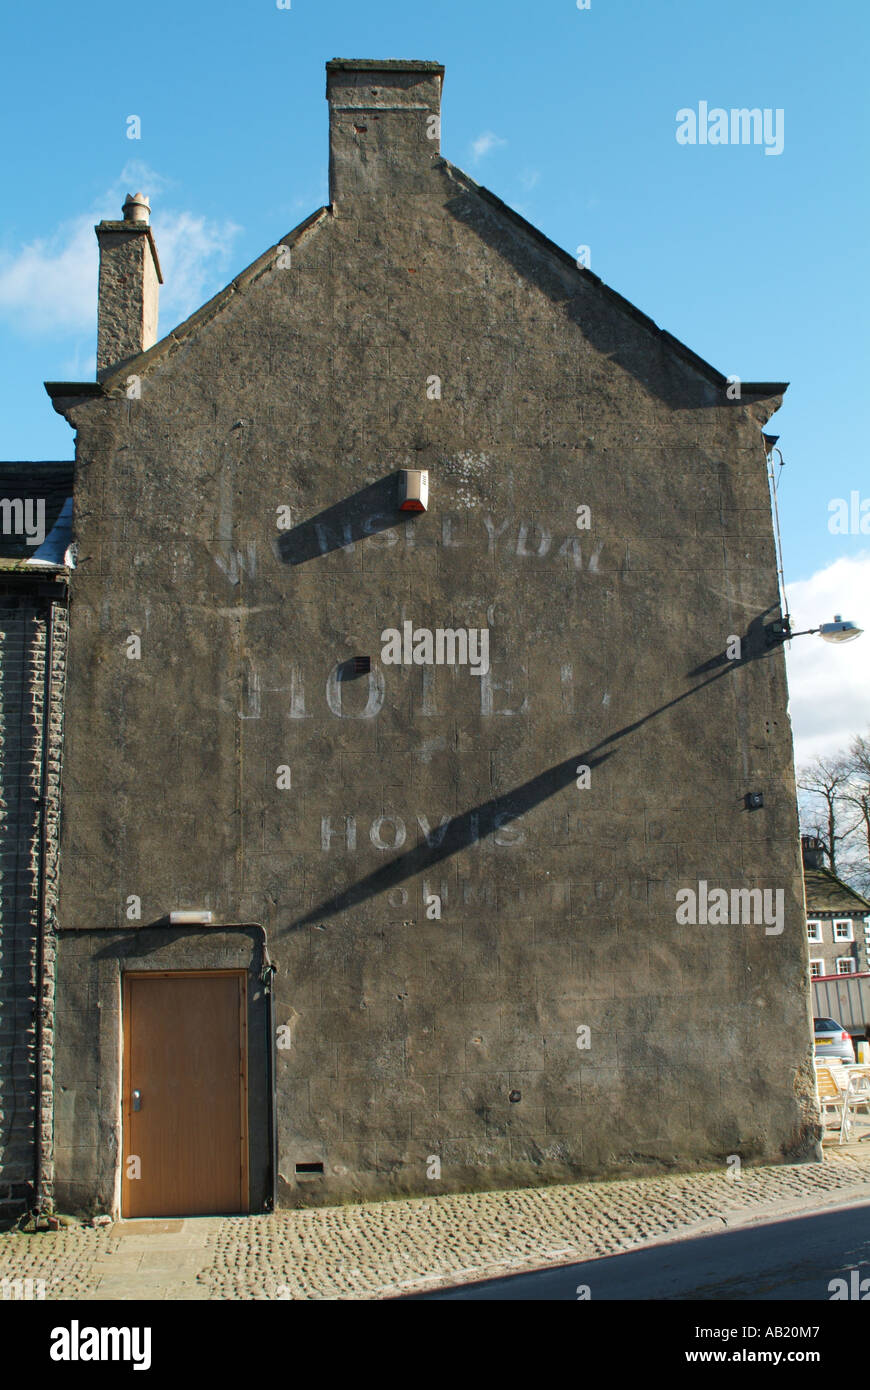 Old advert for Hovis bread on the gable end of the White Swan Hotel, Middleham, North Yorkshire, England, UK. - Stock Image